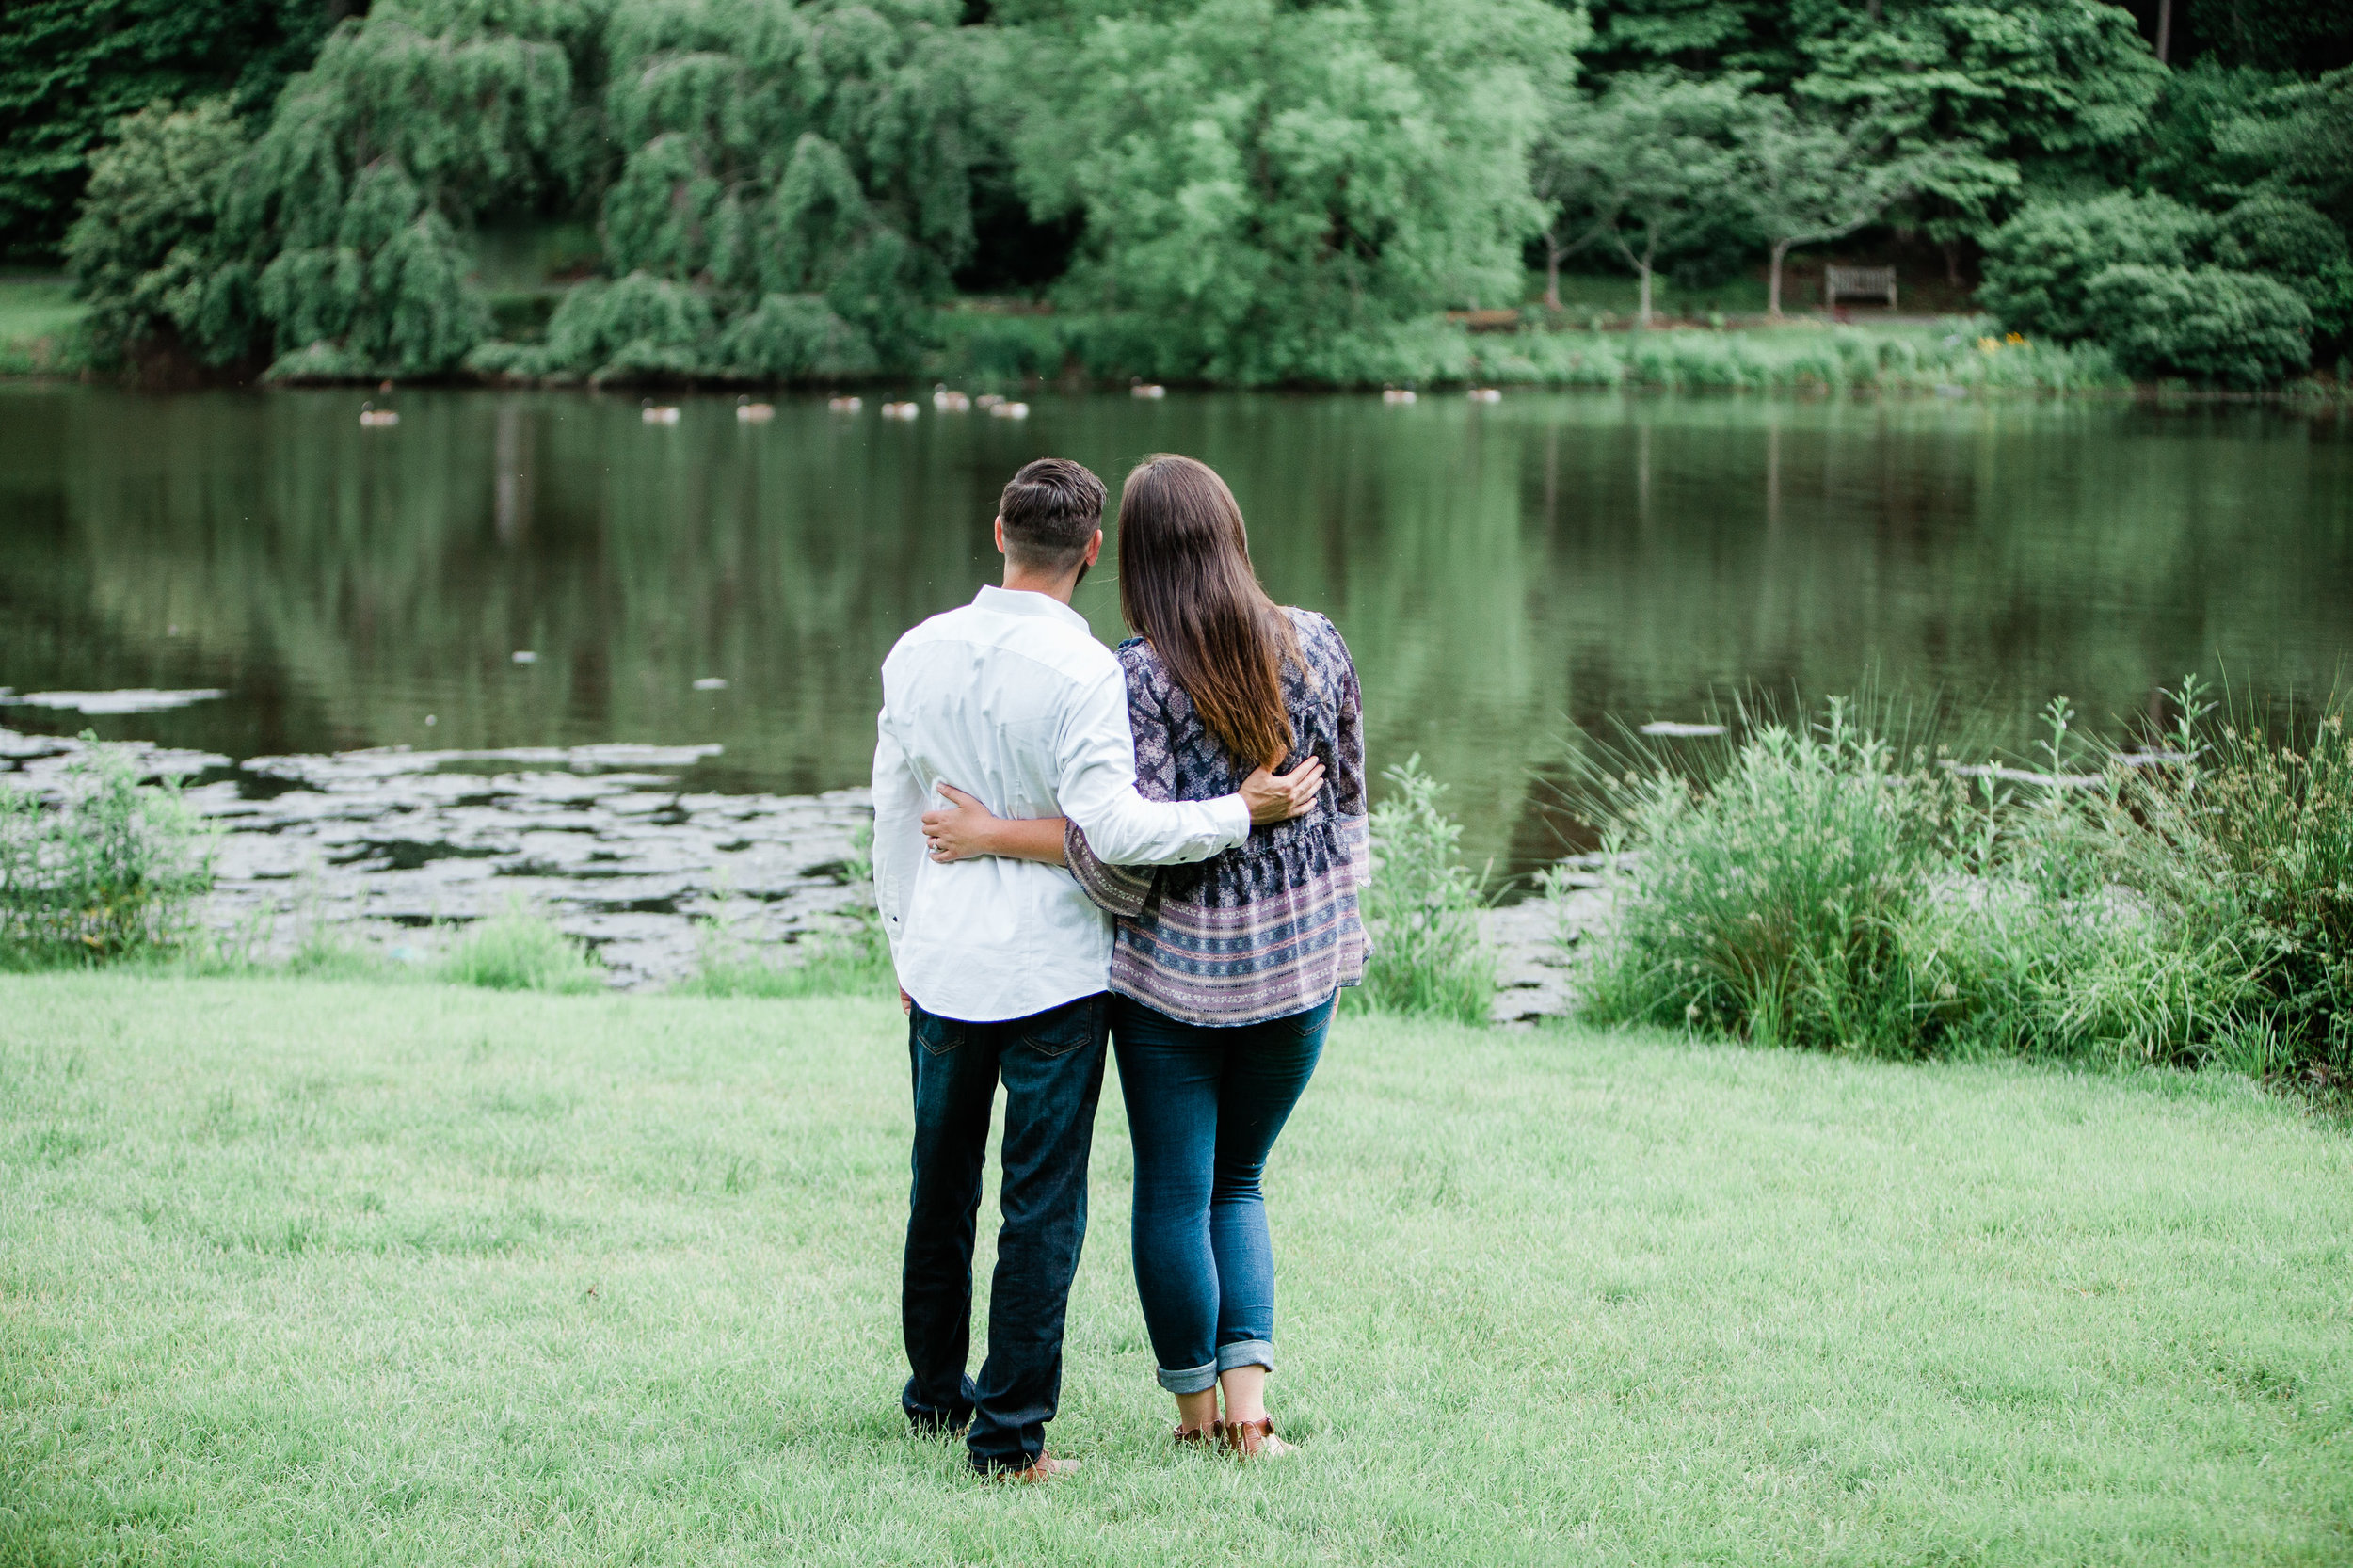 meadowlark_botanical_gardens_engagements-3688.jpg